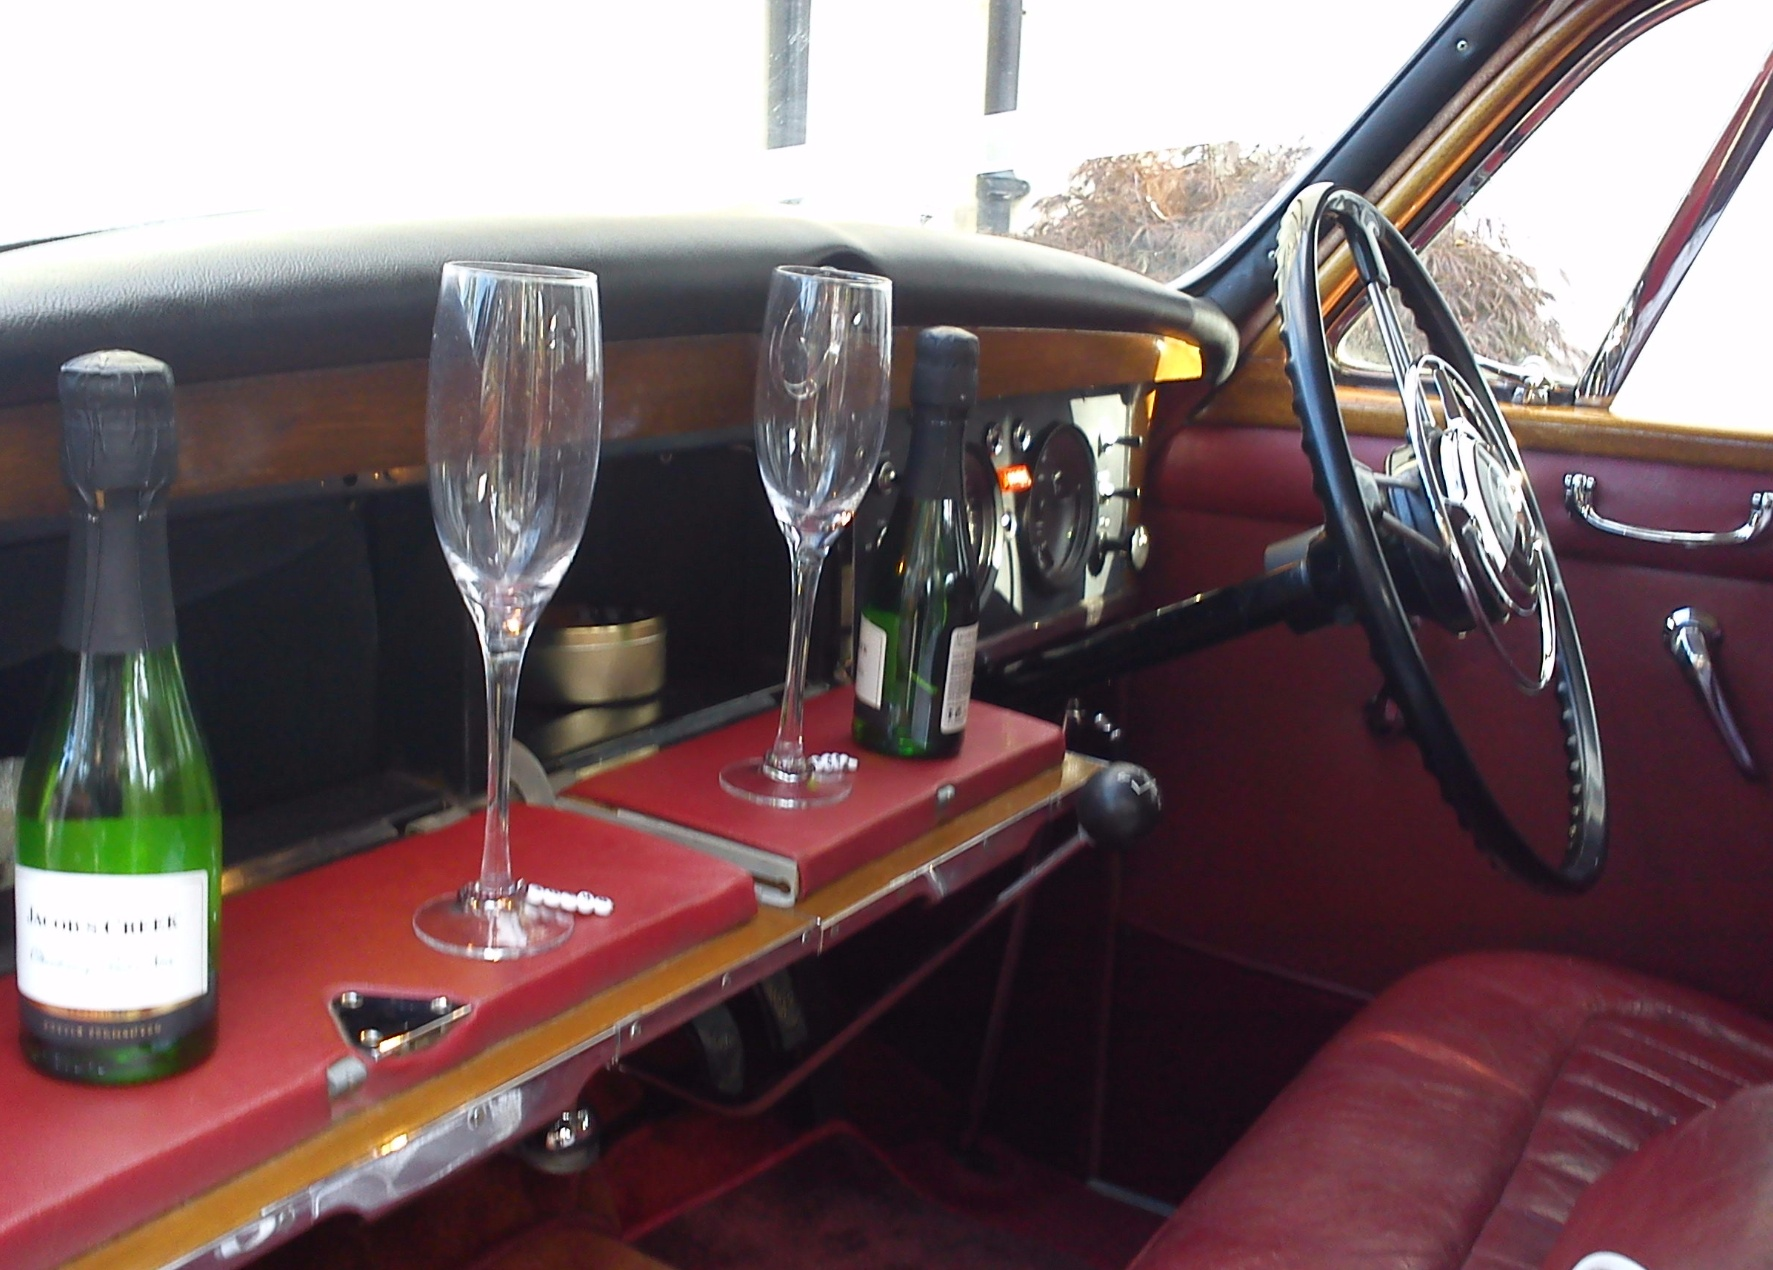 Rover P4 interior ... with complimentary fizz!